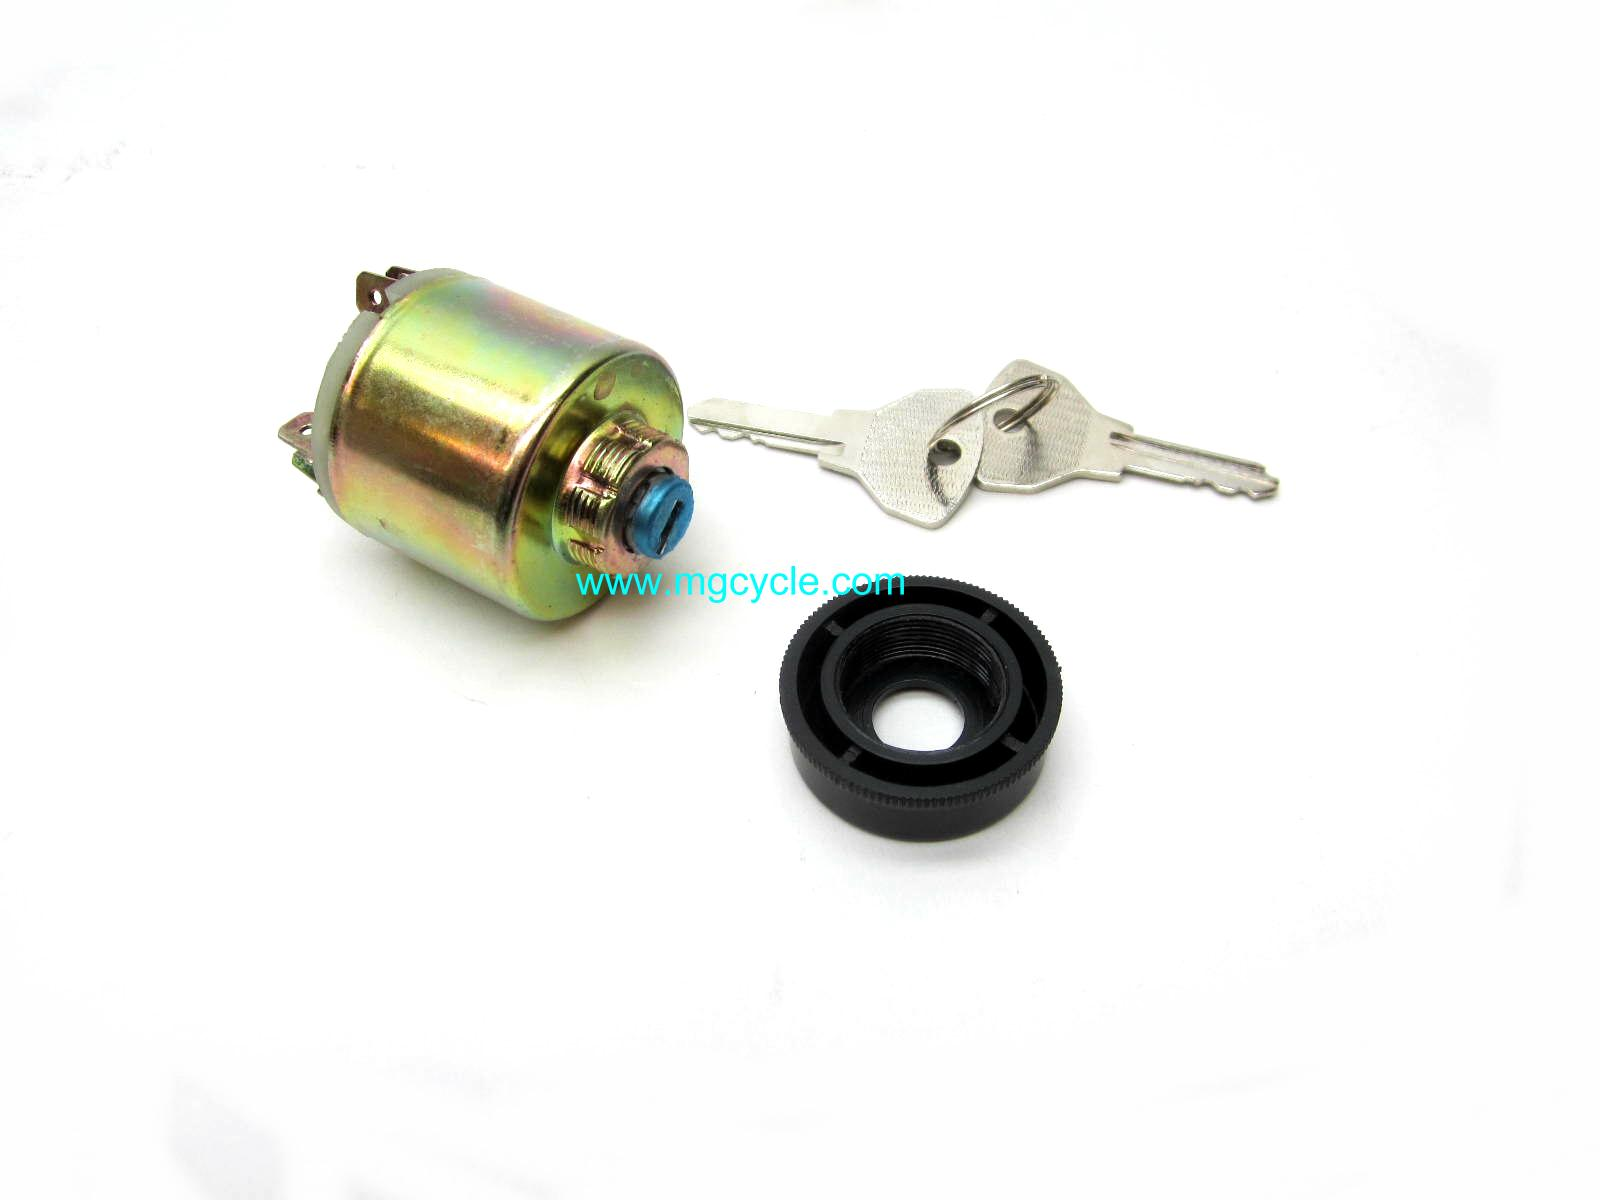 Ignition switch with 2 keys, V700 Ambassador Eldorado